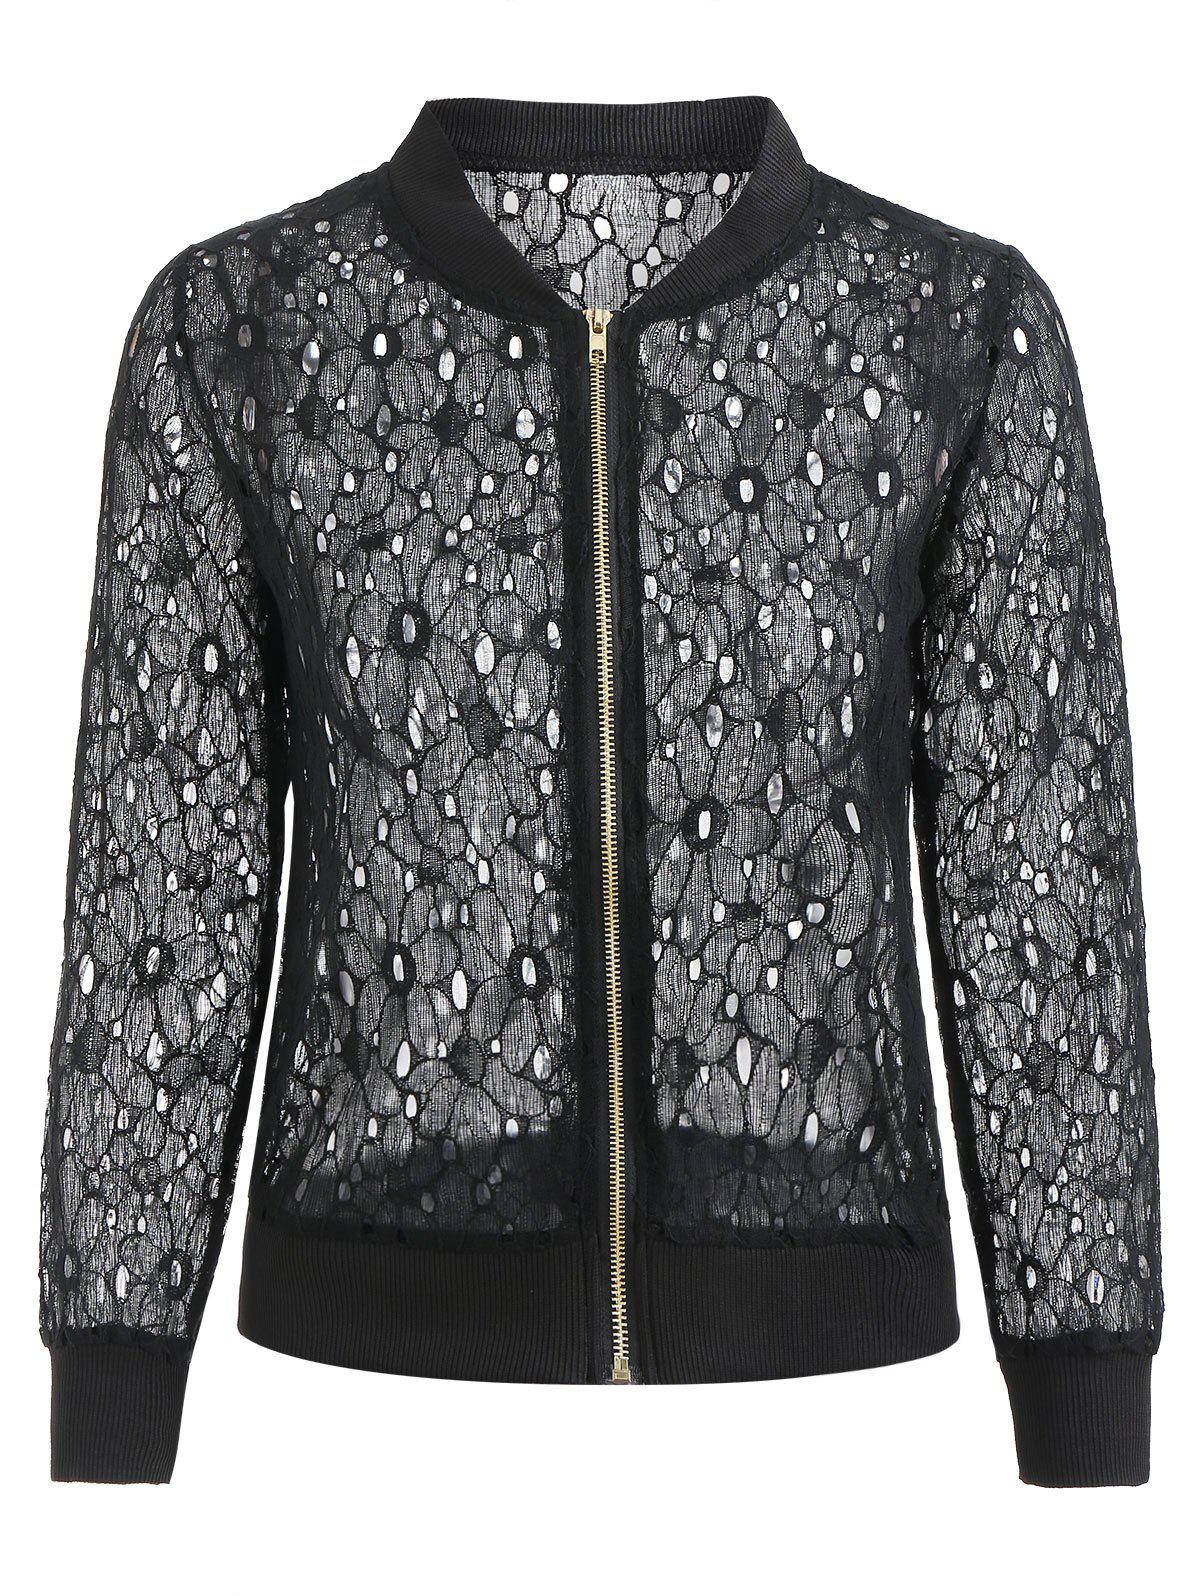 Buy Zip Up Lace Jacket